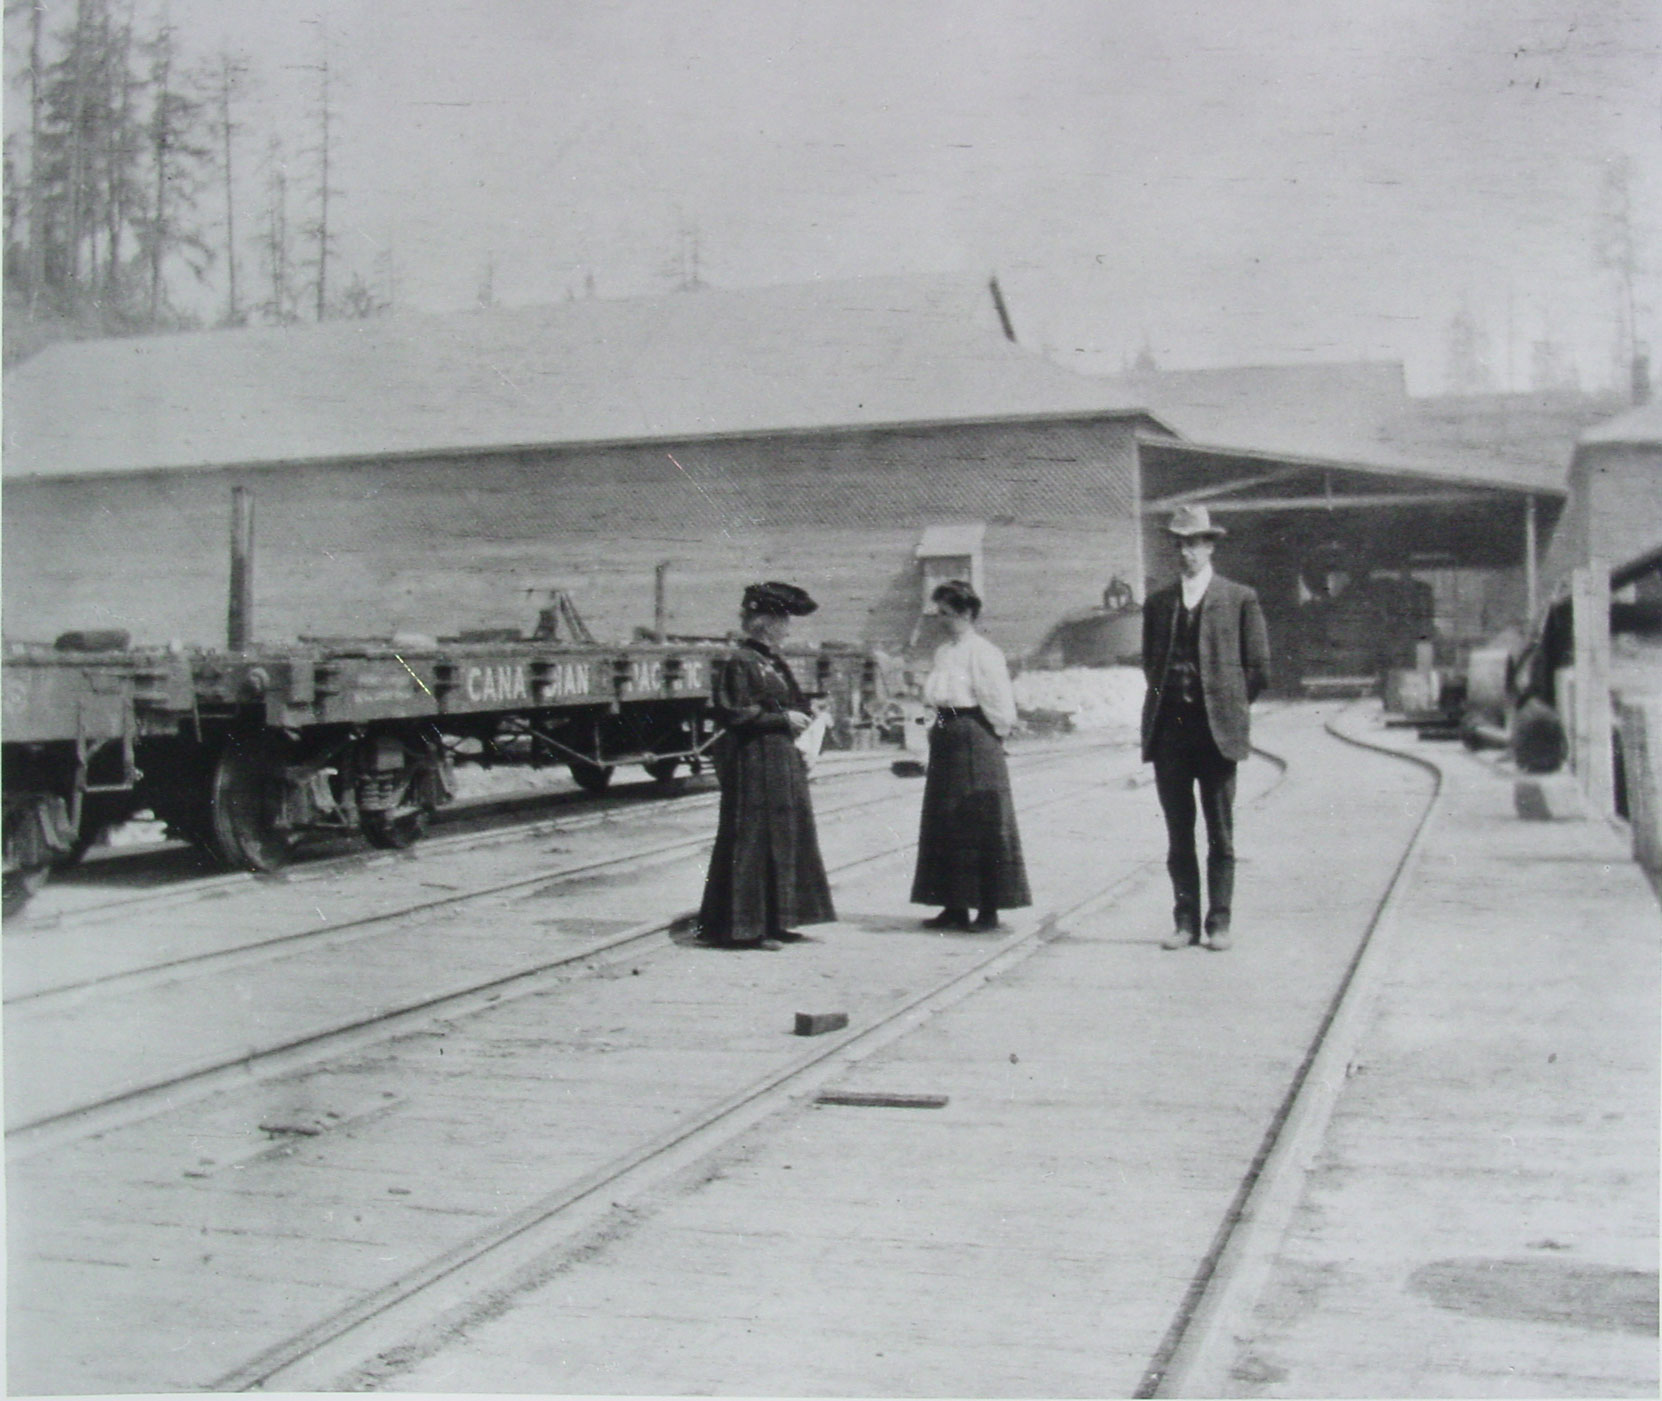 The Vancouver Portland Cement Company dock at Tod Inlet, circa 1909. The woman in the center could be Jennie Butchart. (District of Saanich Archives)